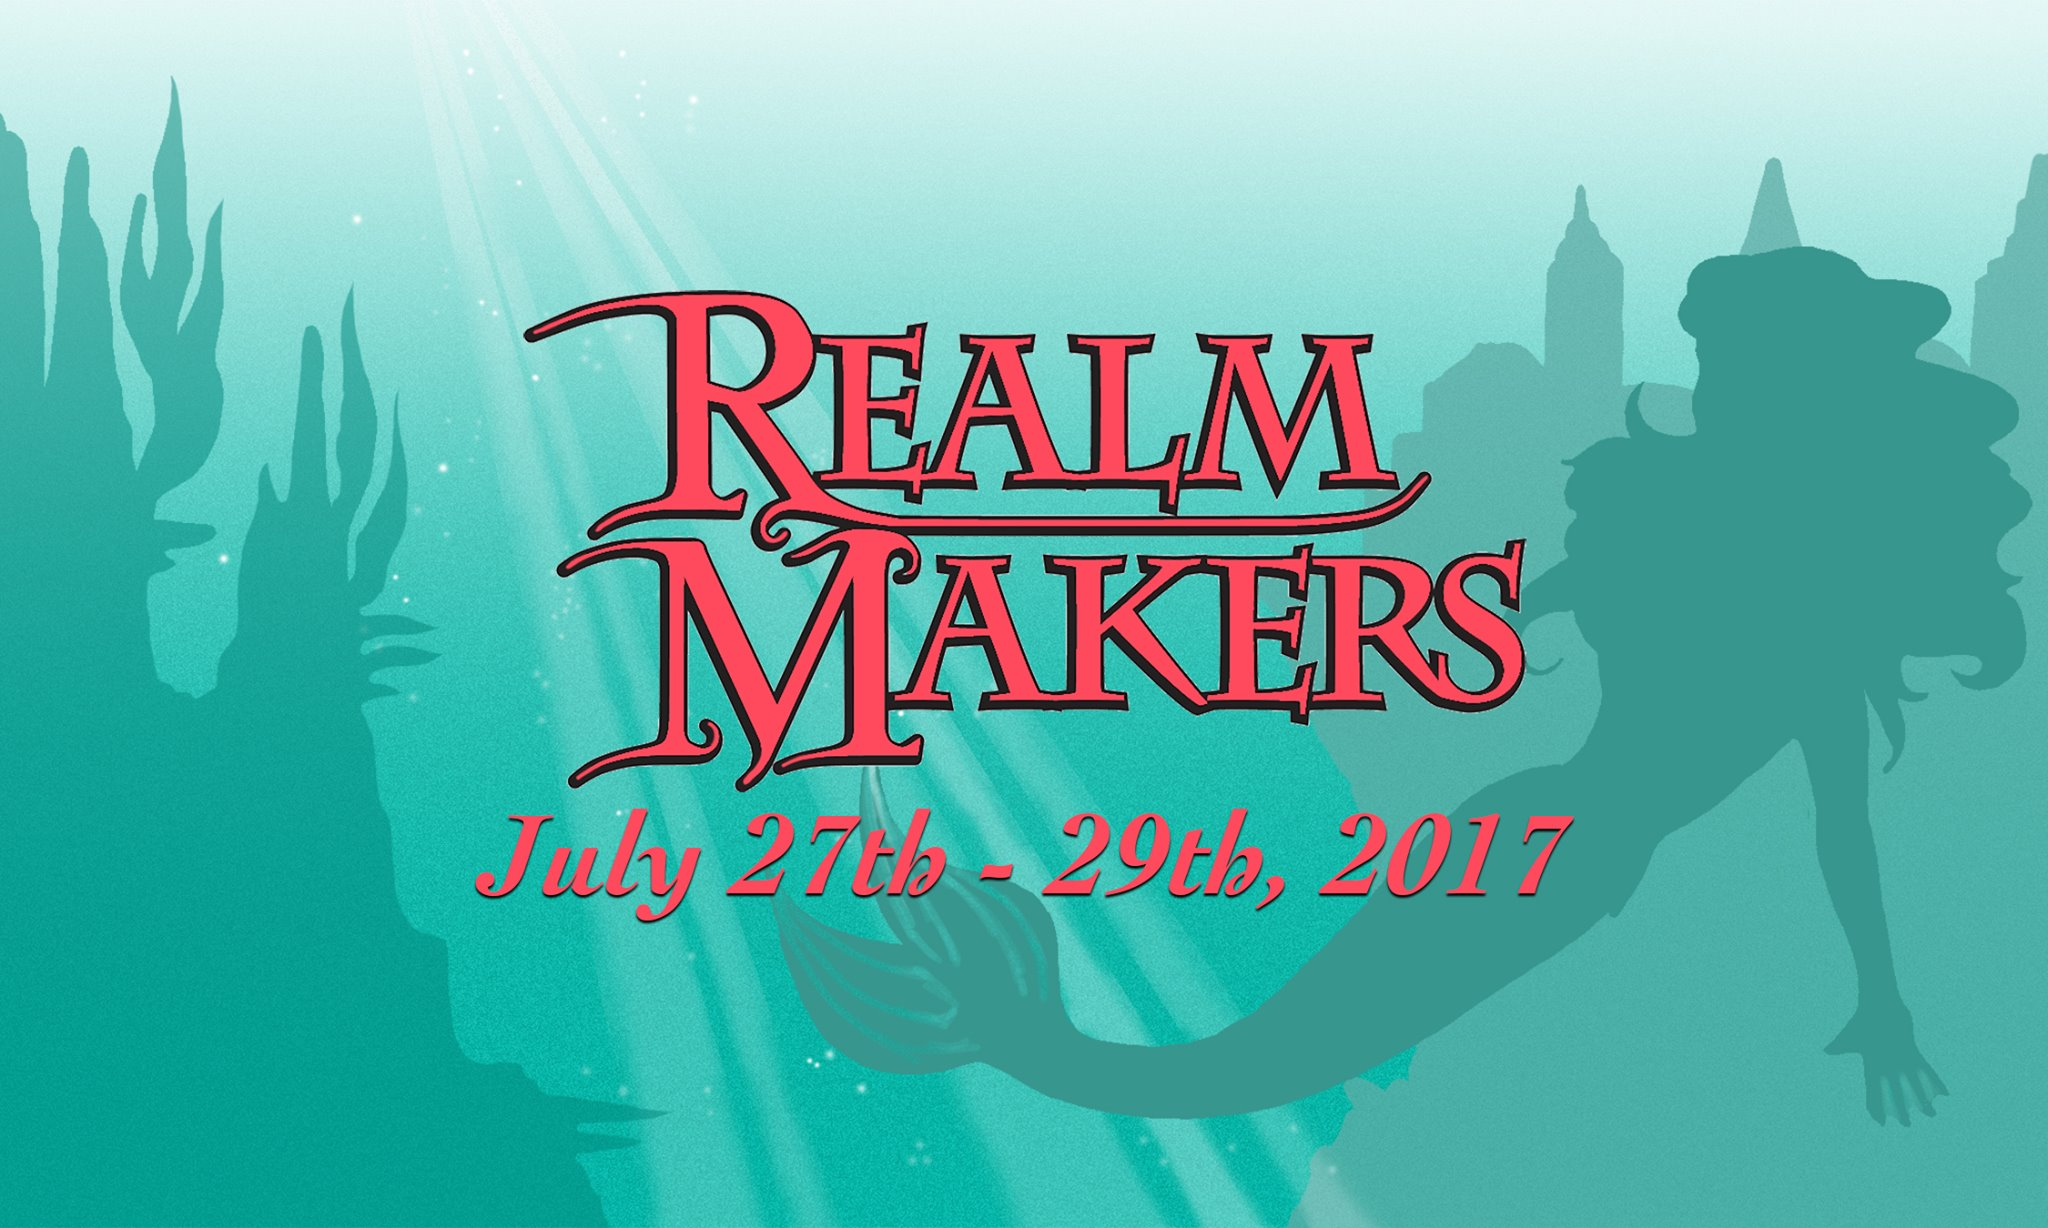 Realm Makers 2017